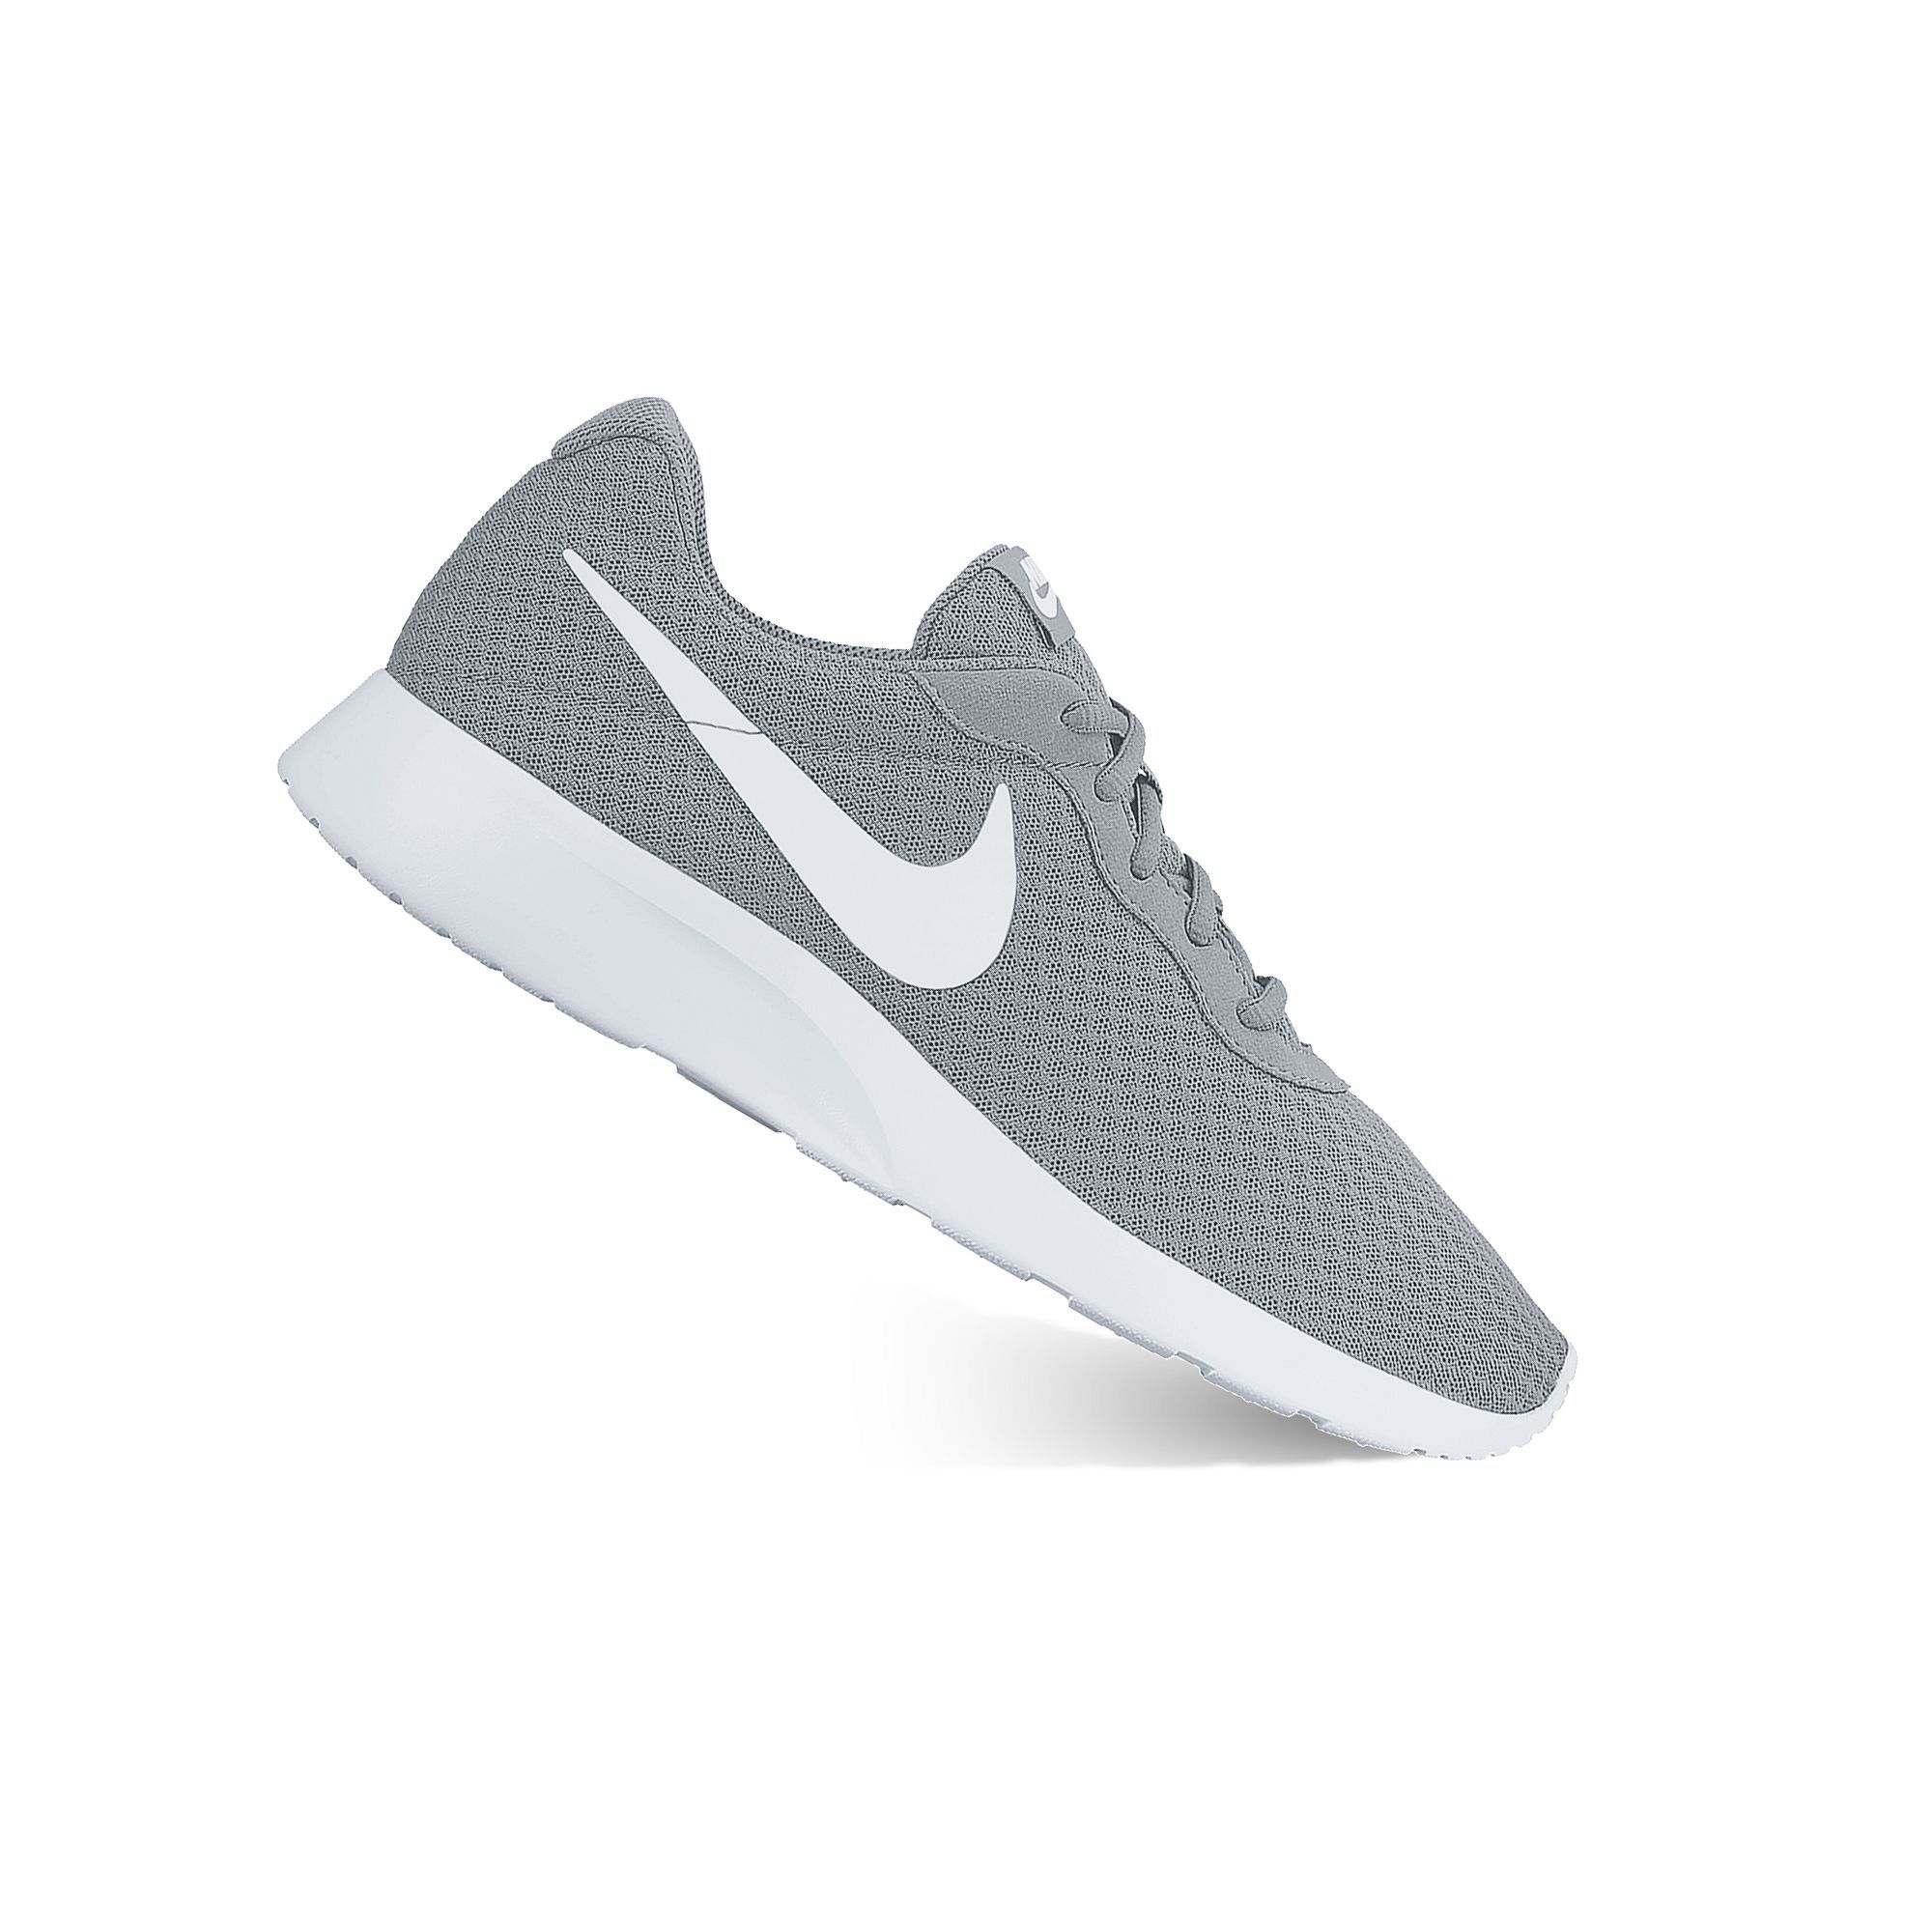 29c124a15e909 Nike Tanjun Men's Athletic Shoes in 2019 | Products | Nike tanjun ...